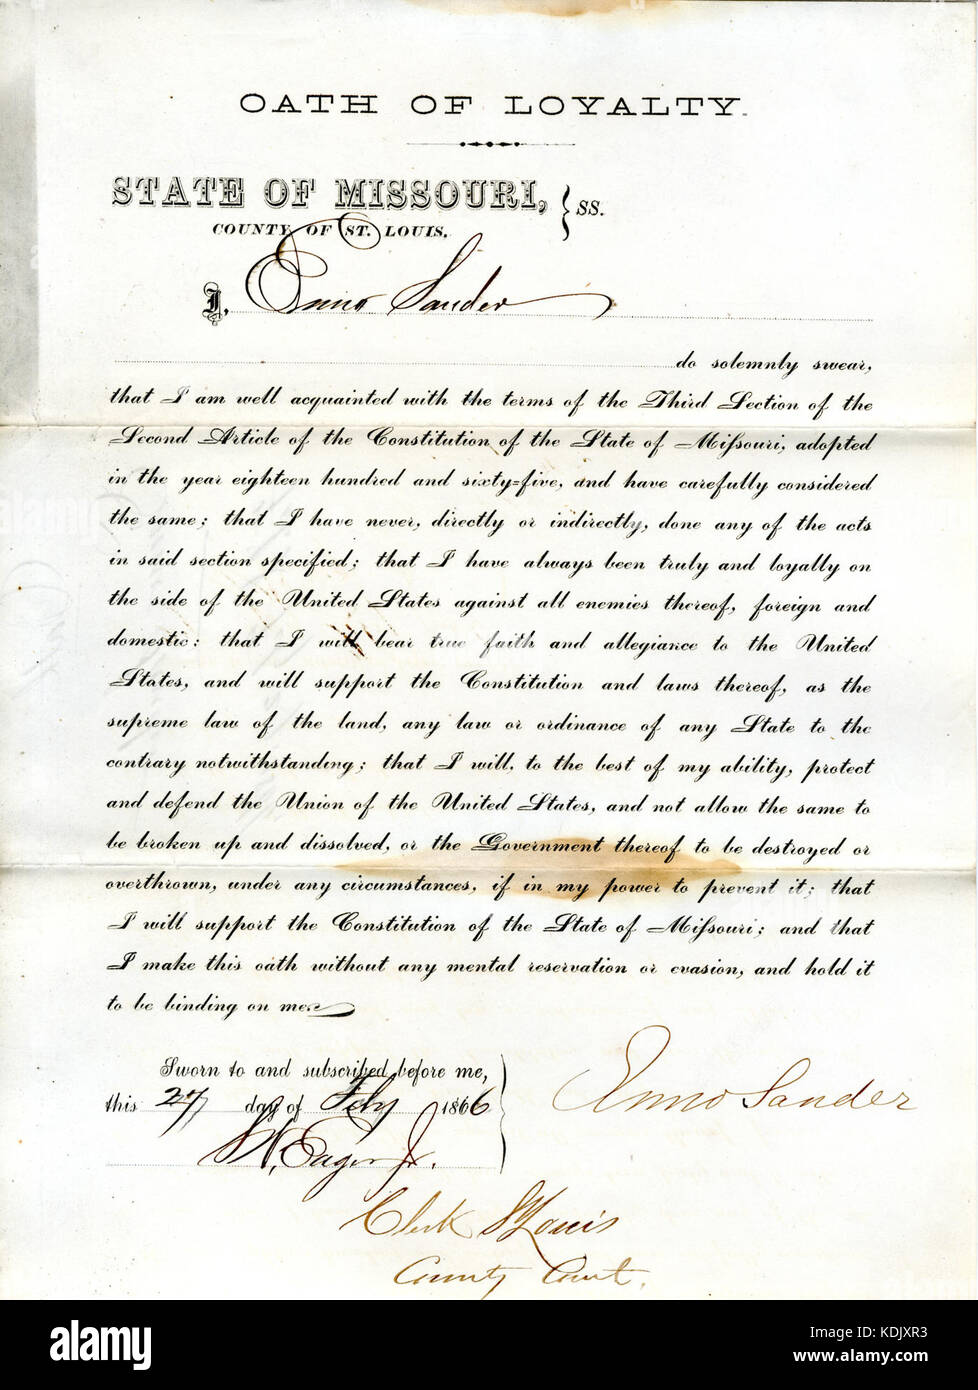 Loyalty oath of Enno Sander of Missouri, County of St. Louis - Stock Image